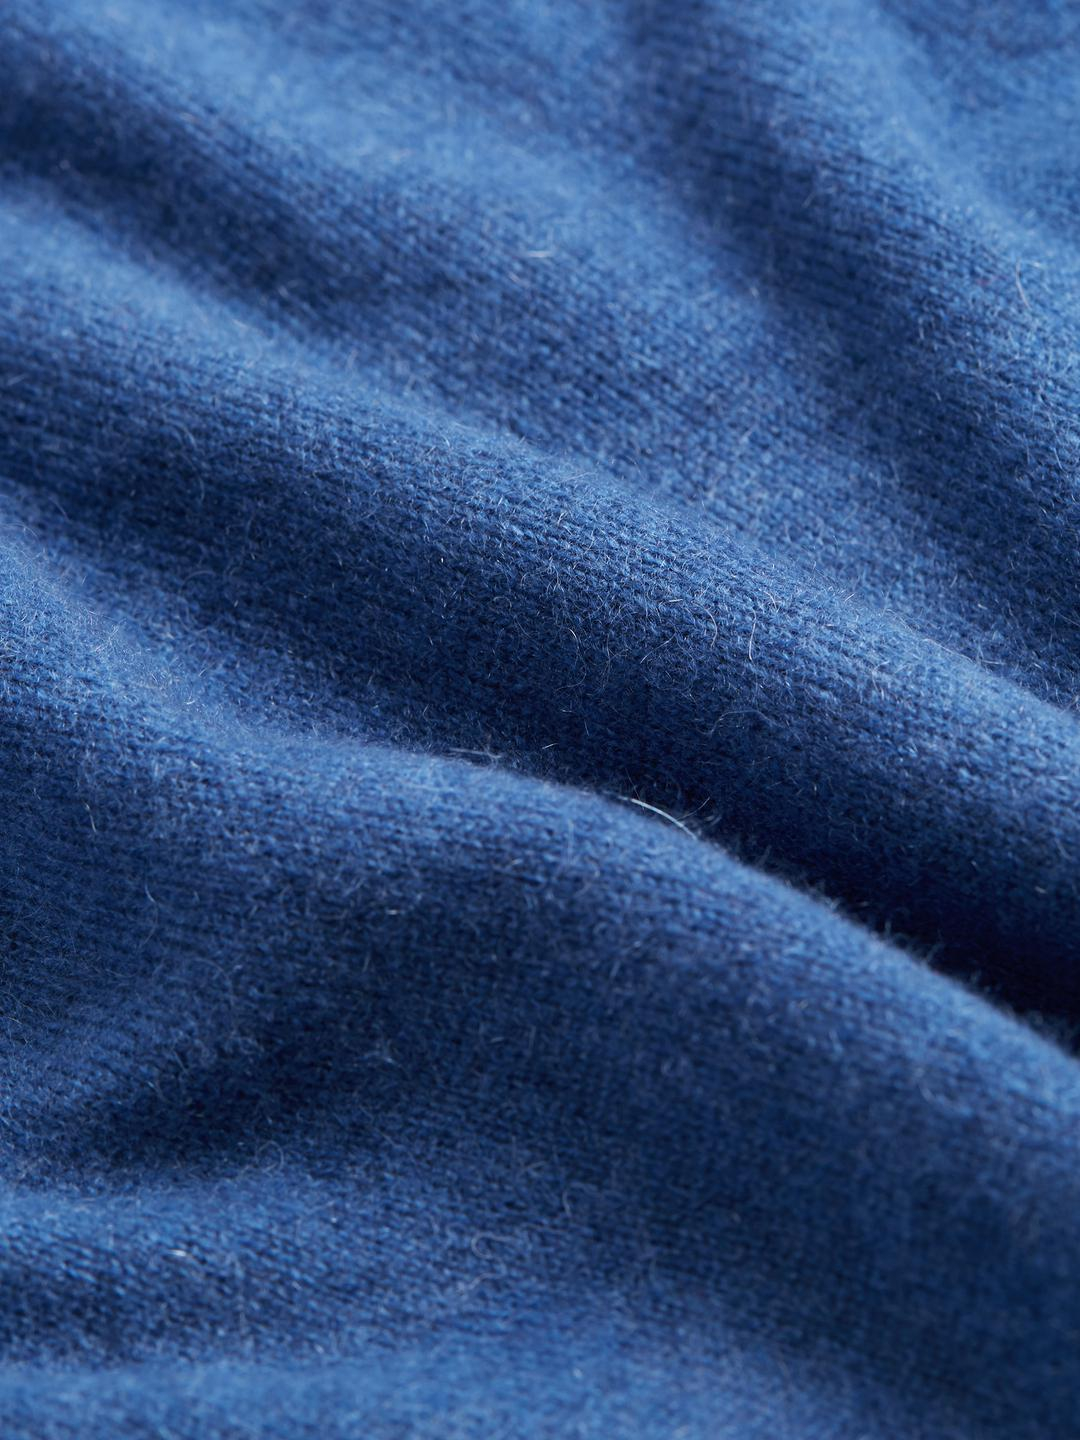 Brooks Brothers Solid Cashmere Sweater in Blue for Men